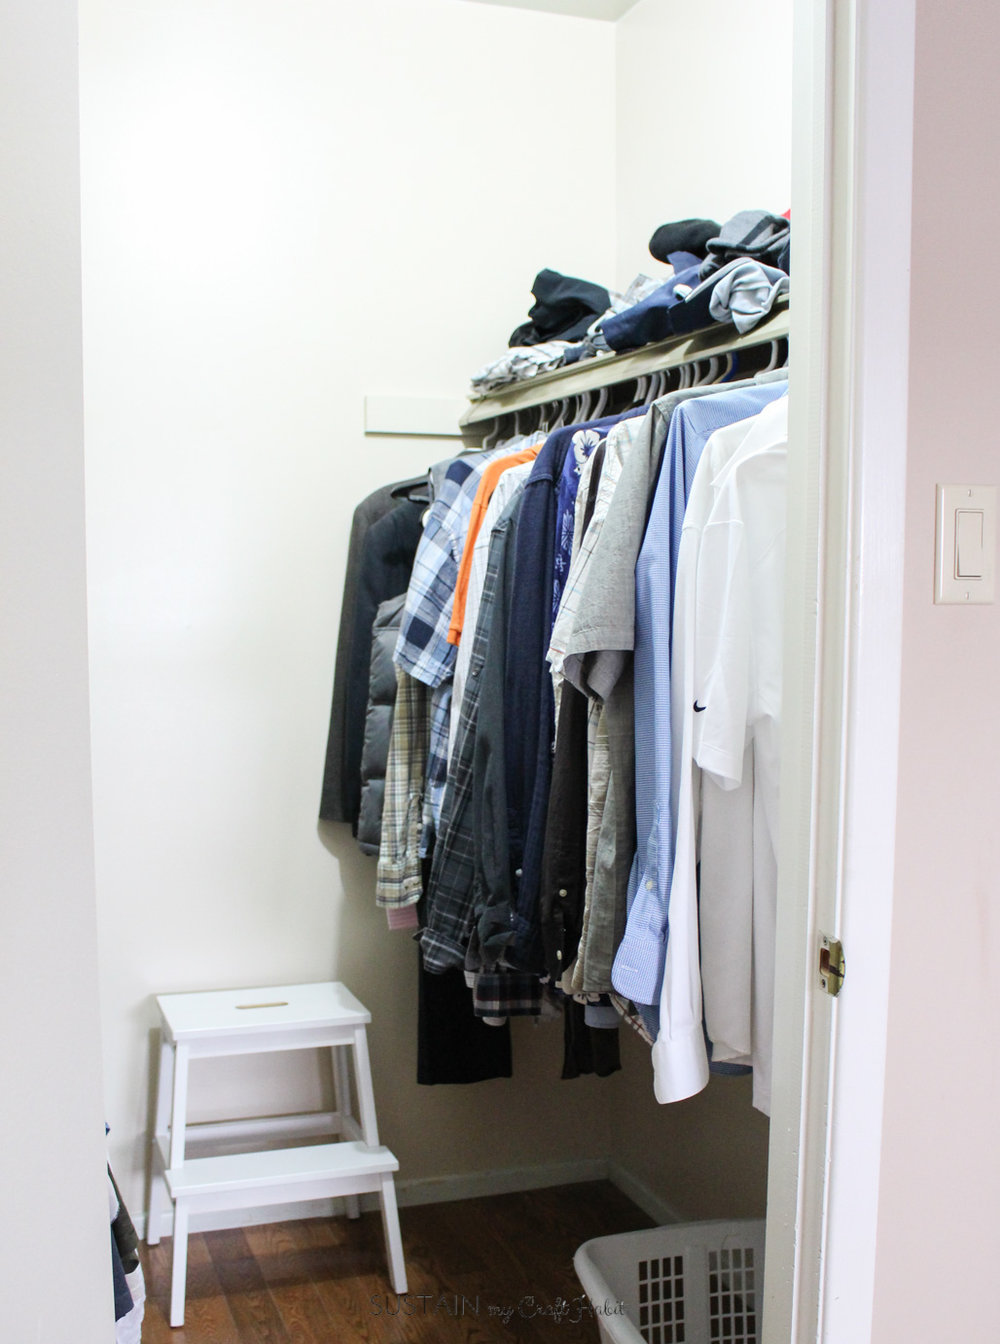 After years of commenting about the lack of space for his clothes, we finally installed a Rubbermaid Configurations Custom closet kit on hubby's side of the closet!